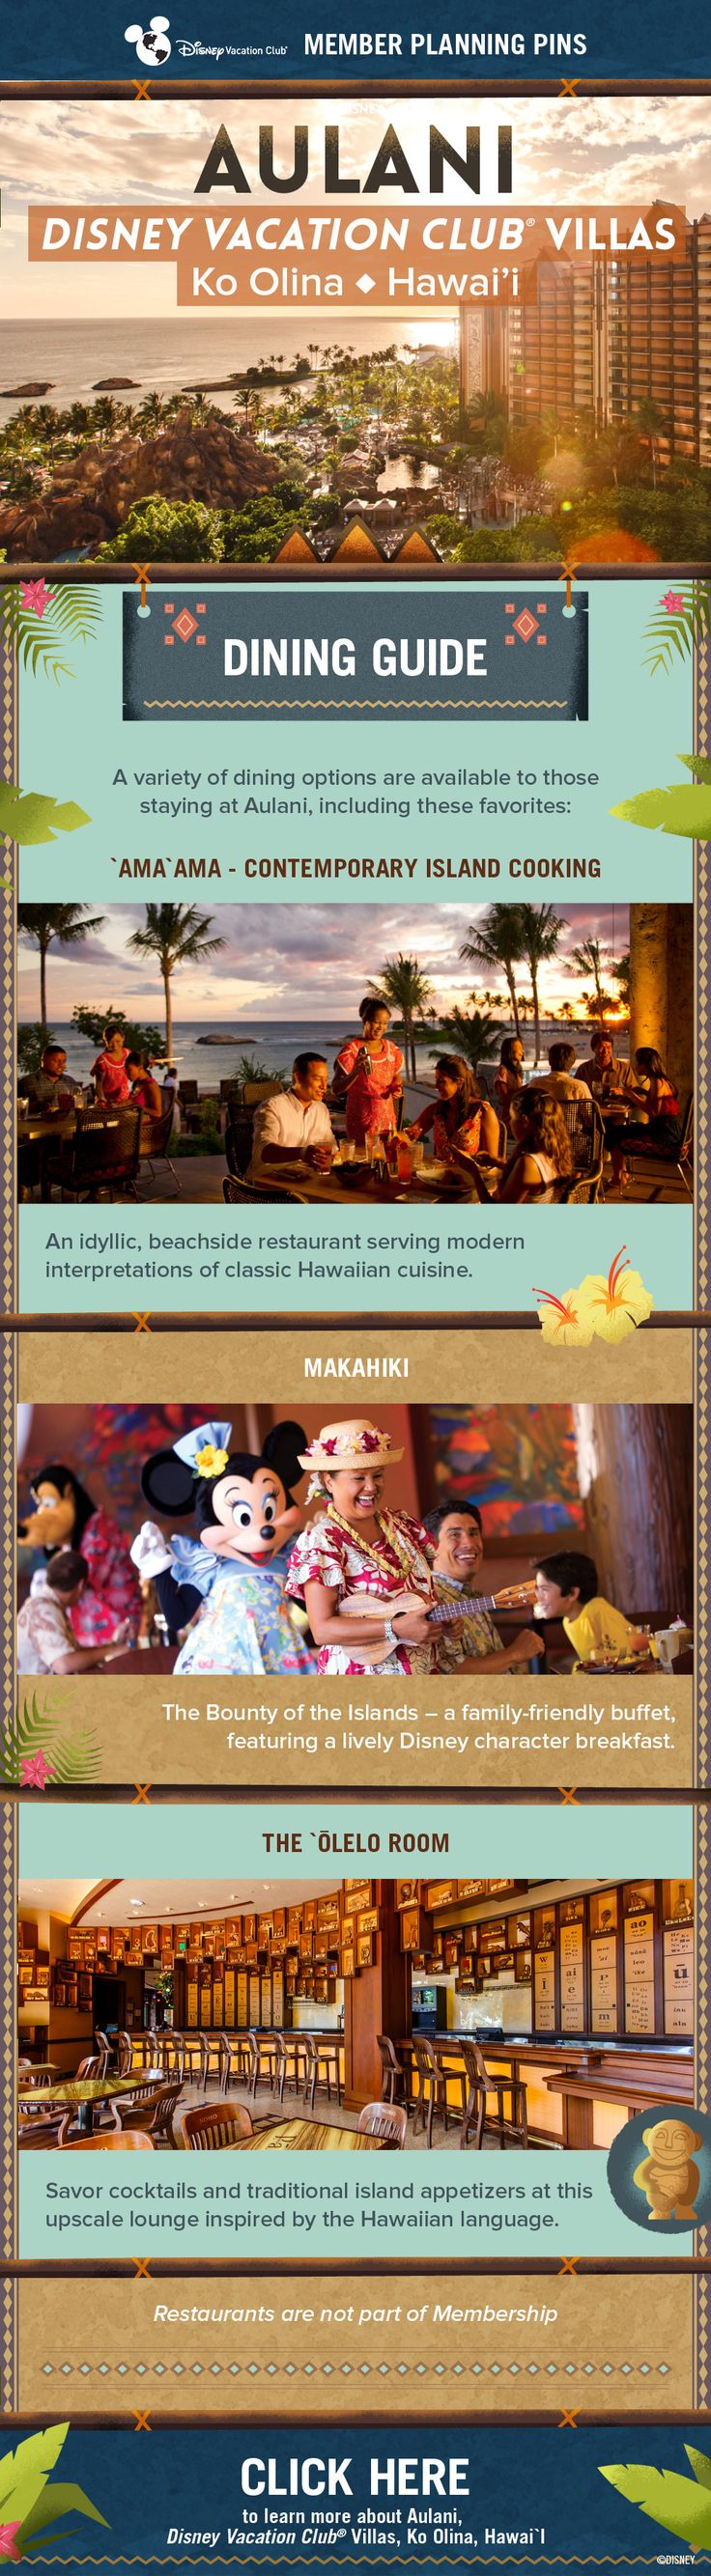 Plan your next Disney Vacation Club vacation to Aulani, Disney Vacation…